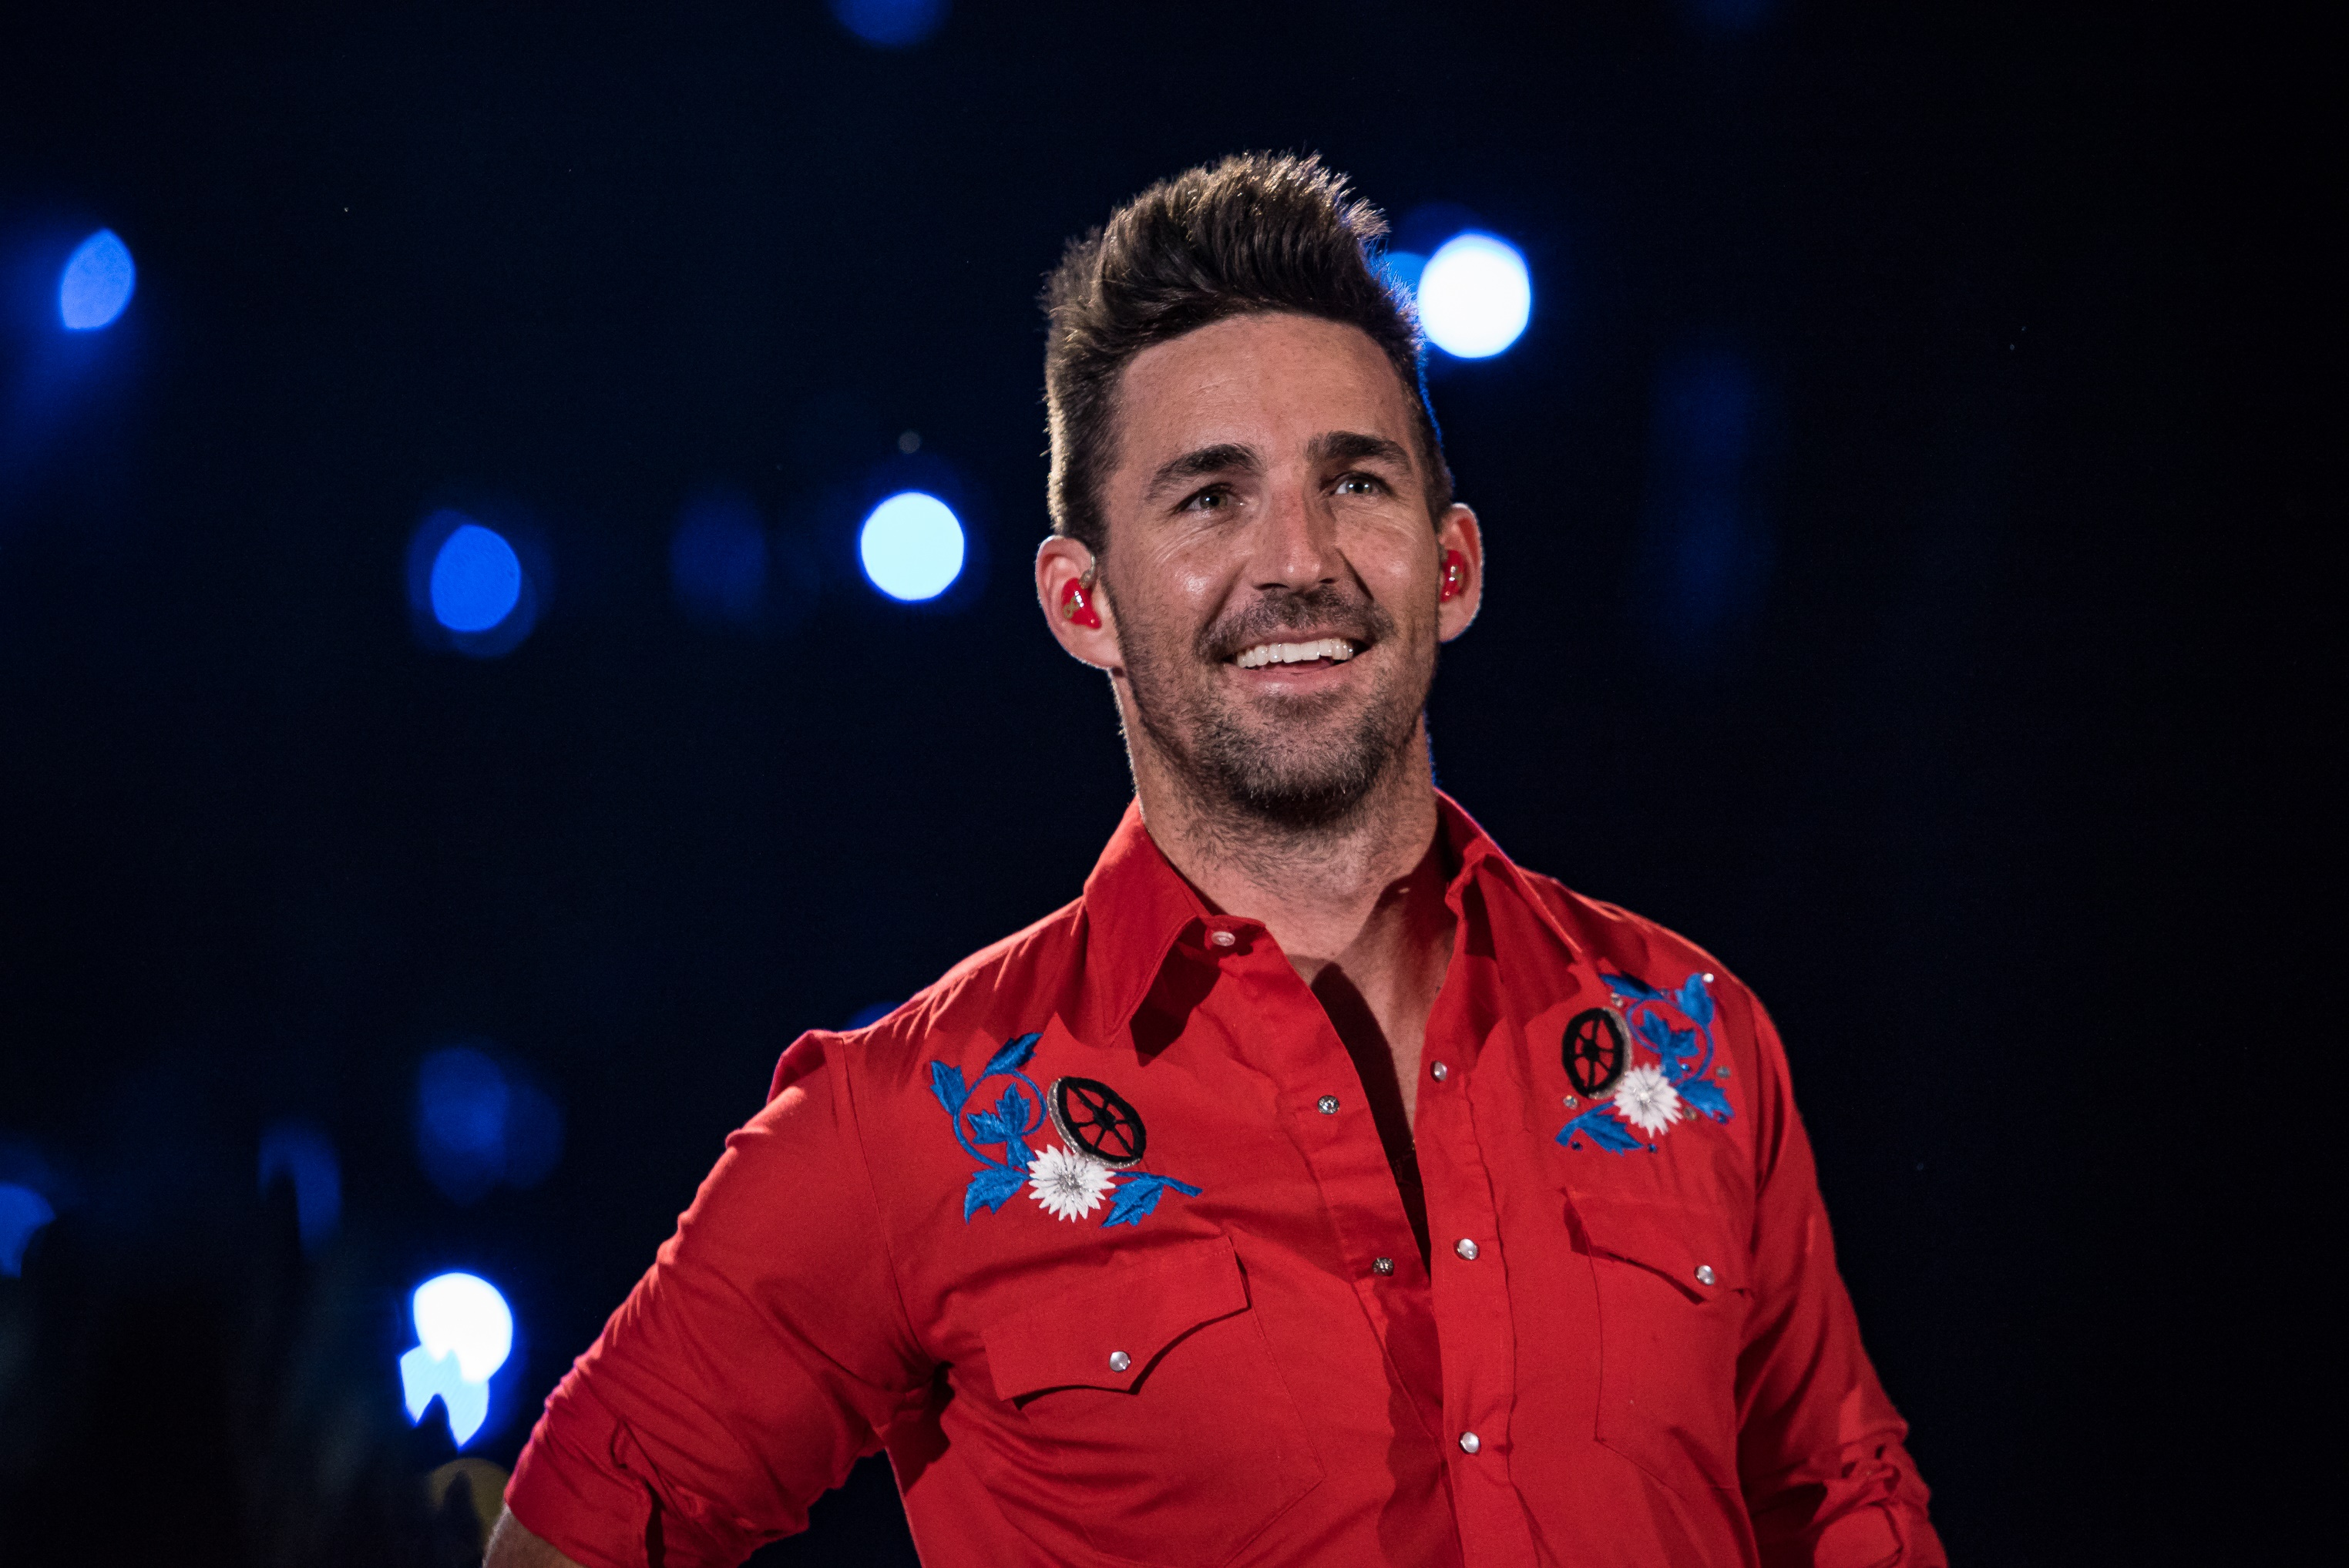 'Life's Whatcha Make It' Isn't Just Jake Owen's Tour Name, It's Also His Mantra